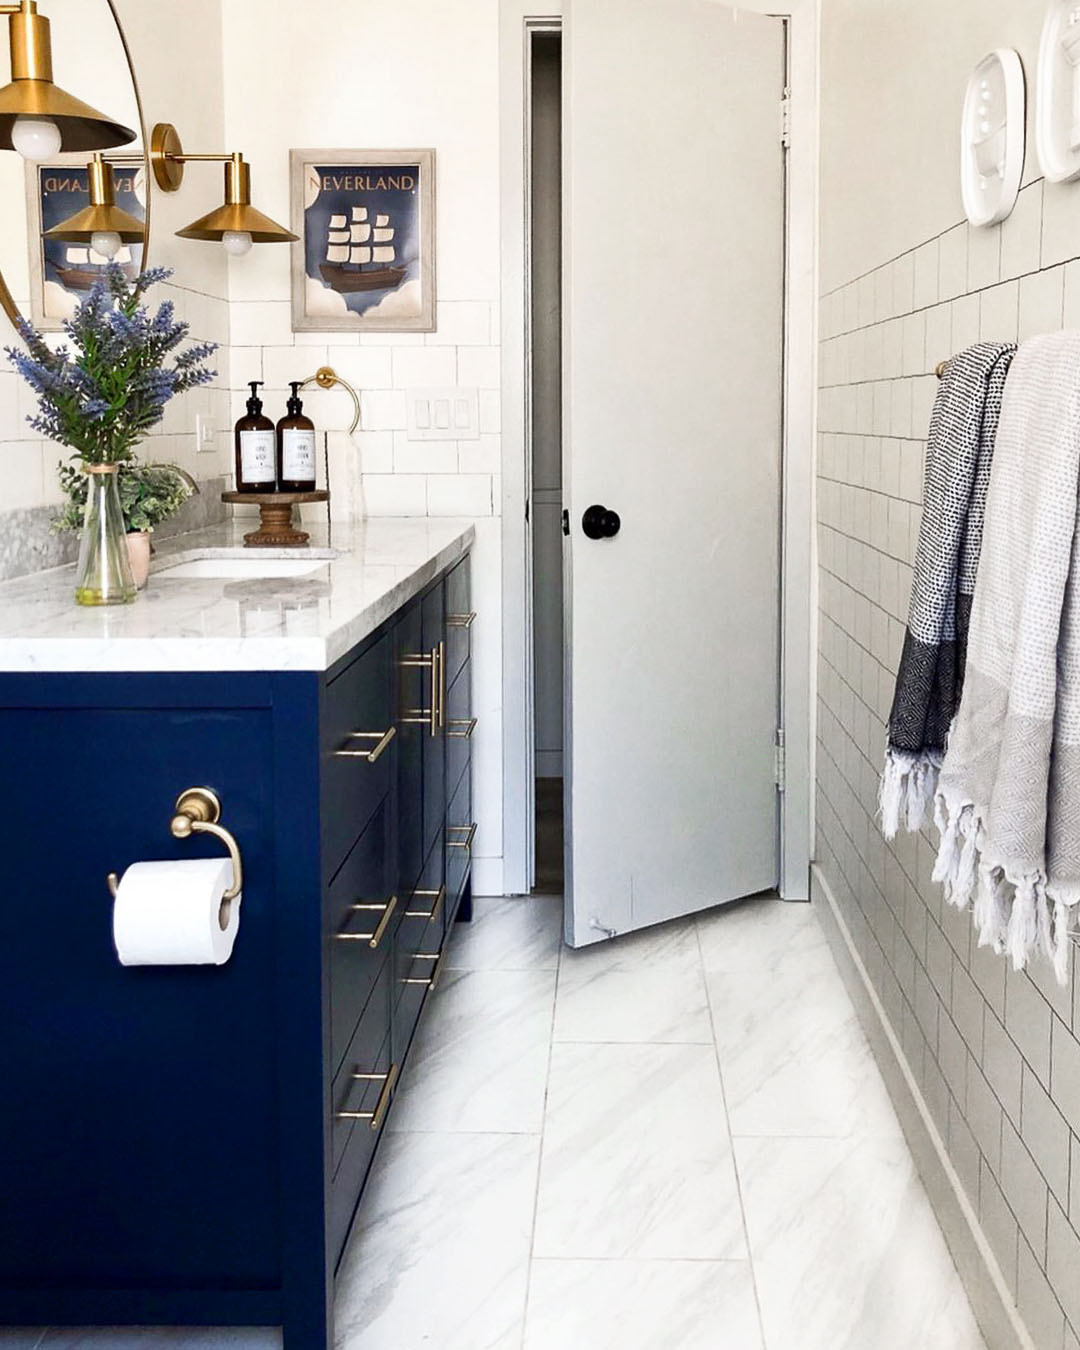 Painting bathroom cabinets can seriously transform the look of your space — even in the span of a weekend! Here's how to do it like a DIY pro.